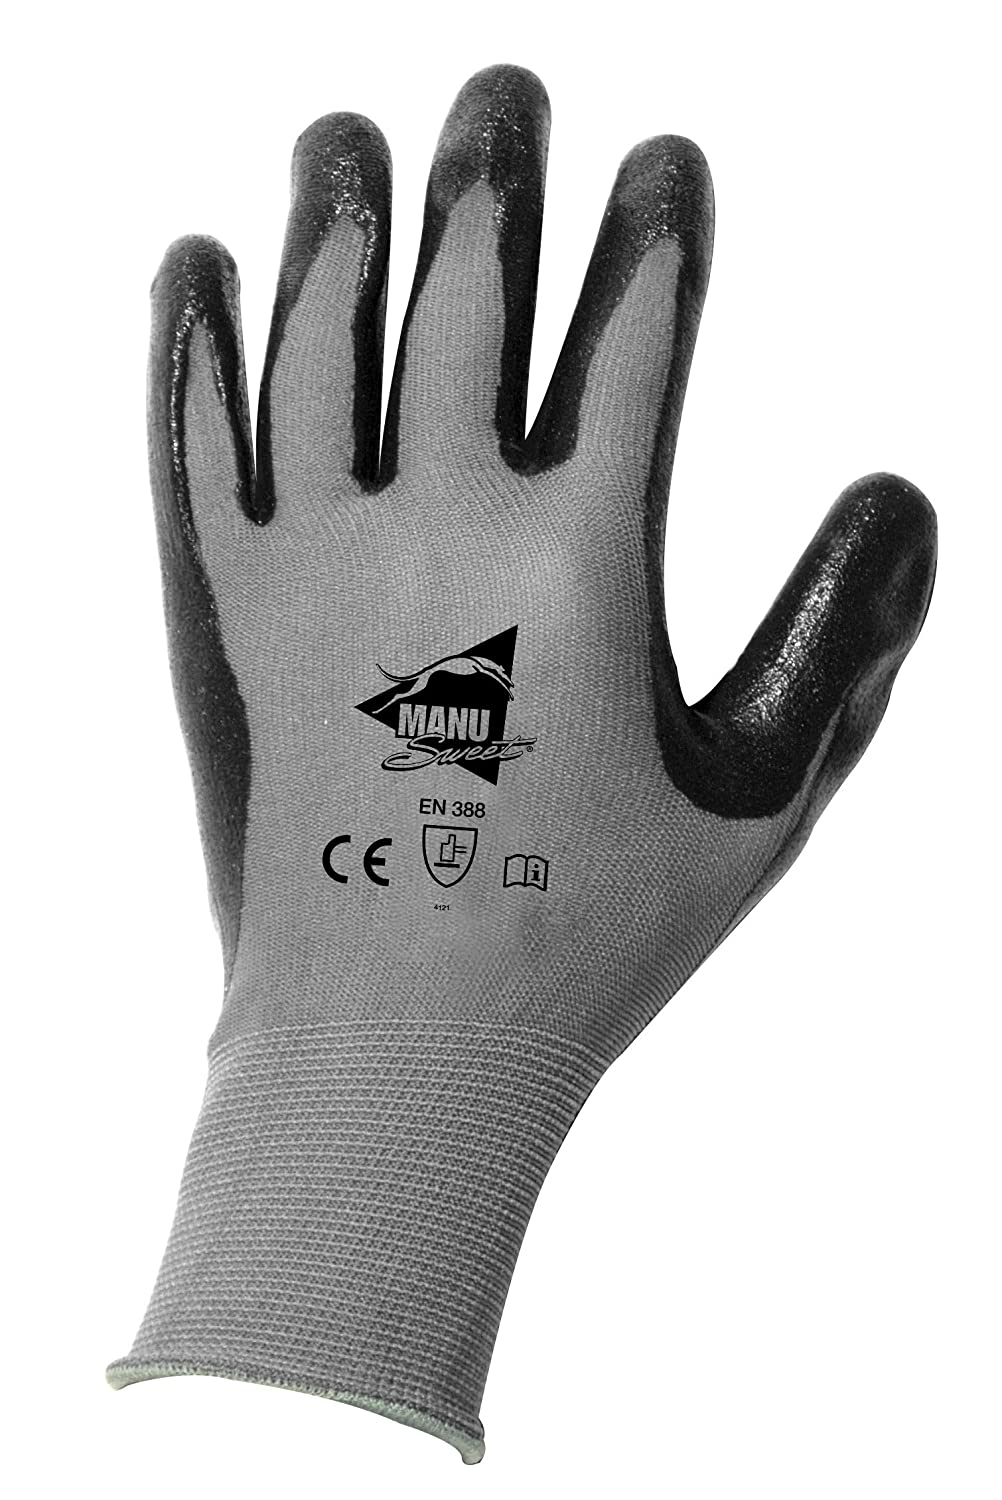 Manusweet Captain Mekanik Gants de travail Mé canique Fine Enduction Nitrile 112321